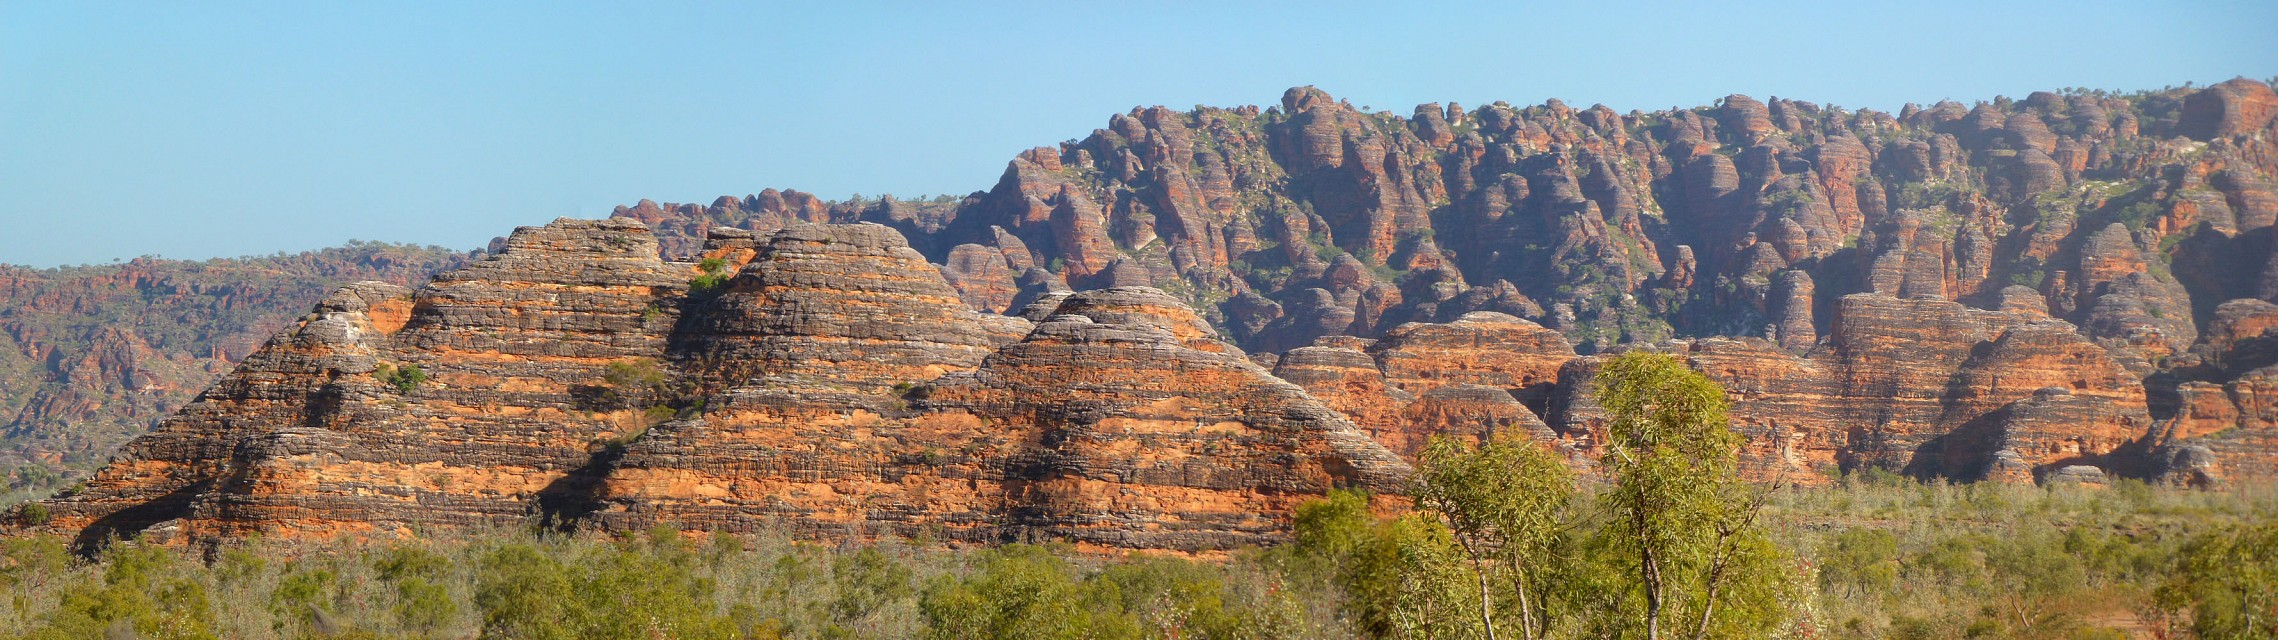 Bungle Bungles Panorama - Purnululu National Park